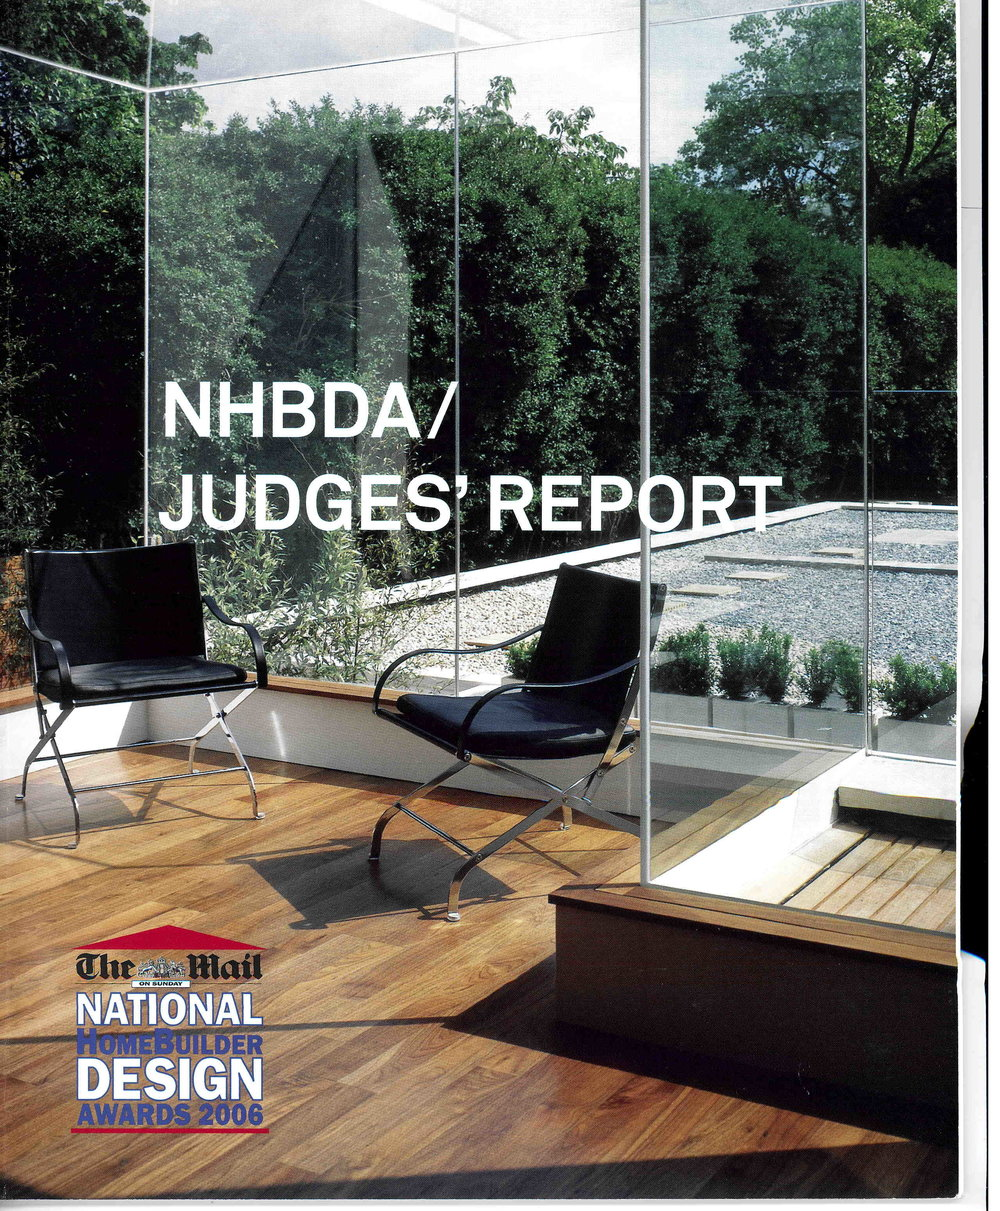 National Homebuilder Awards, 2006